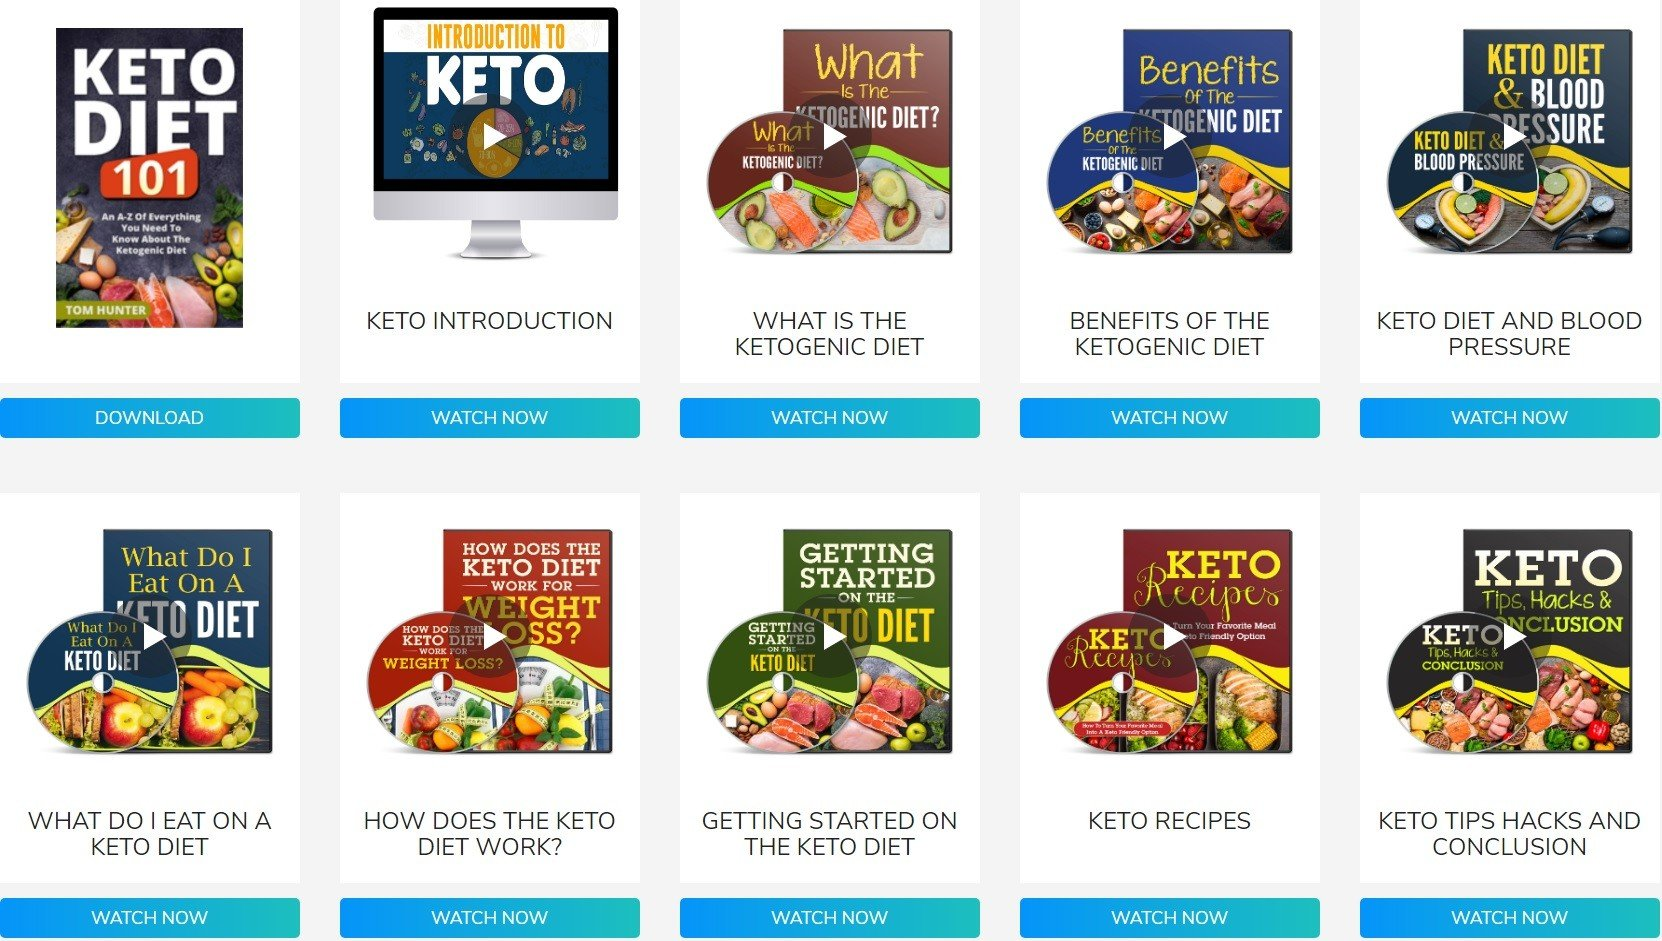 Plan Custom Keto Diet  Length